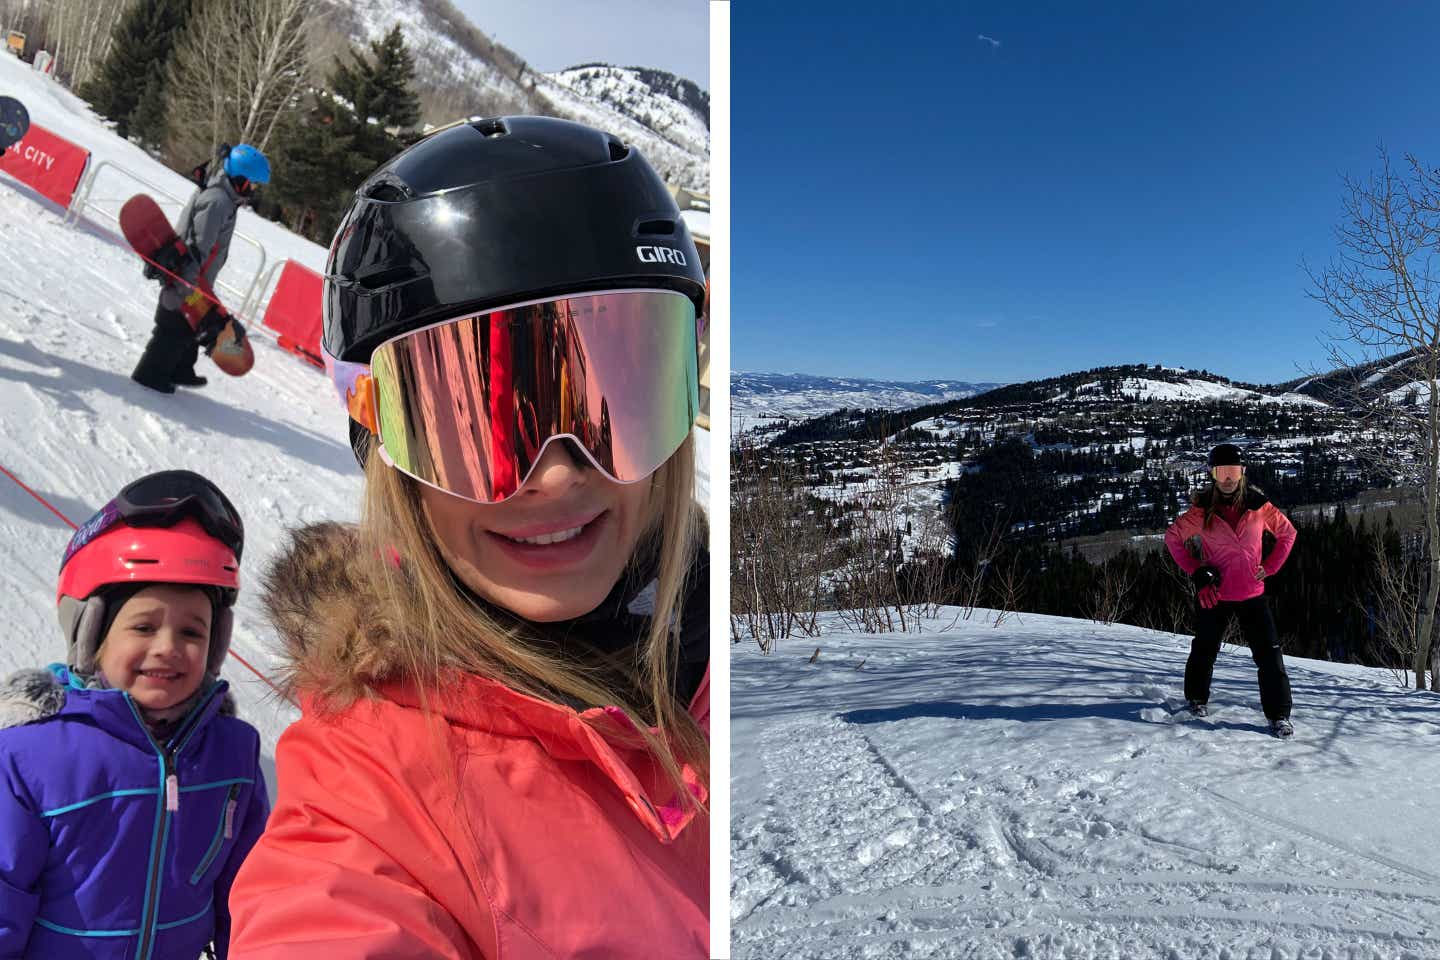 Left: Co-author, Jessica (right), wears a pink parka and black ski helmet with goggles while posing with her daughter (left) on a ski trip. Right: Co-author, Jessica, wears a pink parka and black ski helmet with goggles while posing in front of snowcapped mountains during a ski trip.